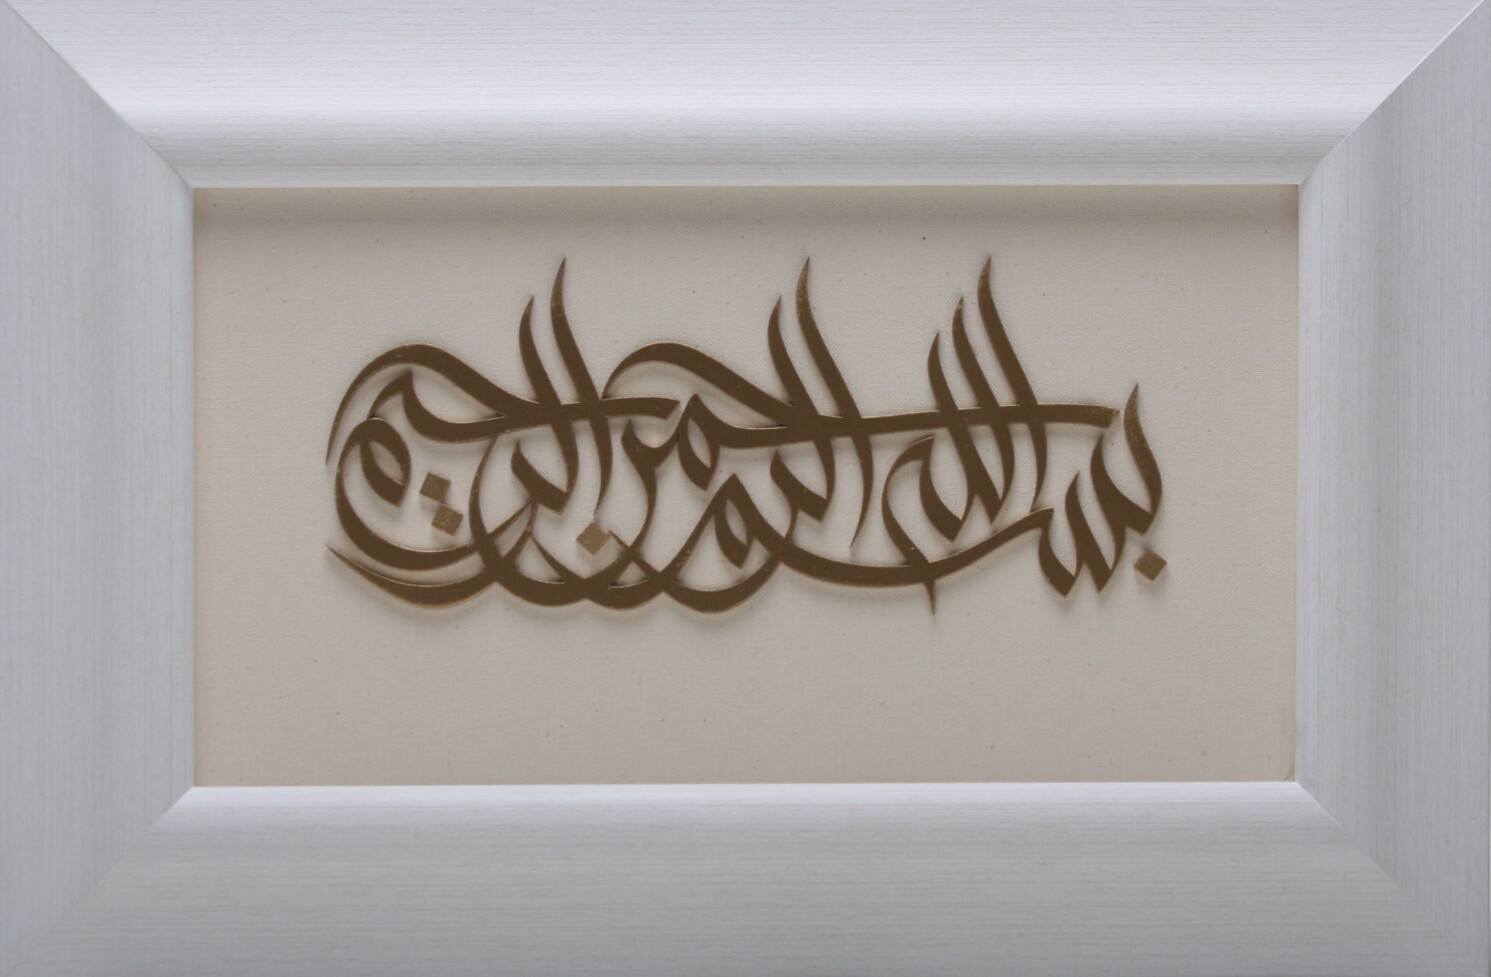 Bismillah 3D Gold Sunbuli Calligraphy Design in White Curved Frame